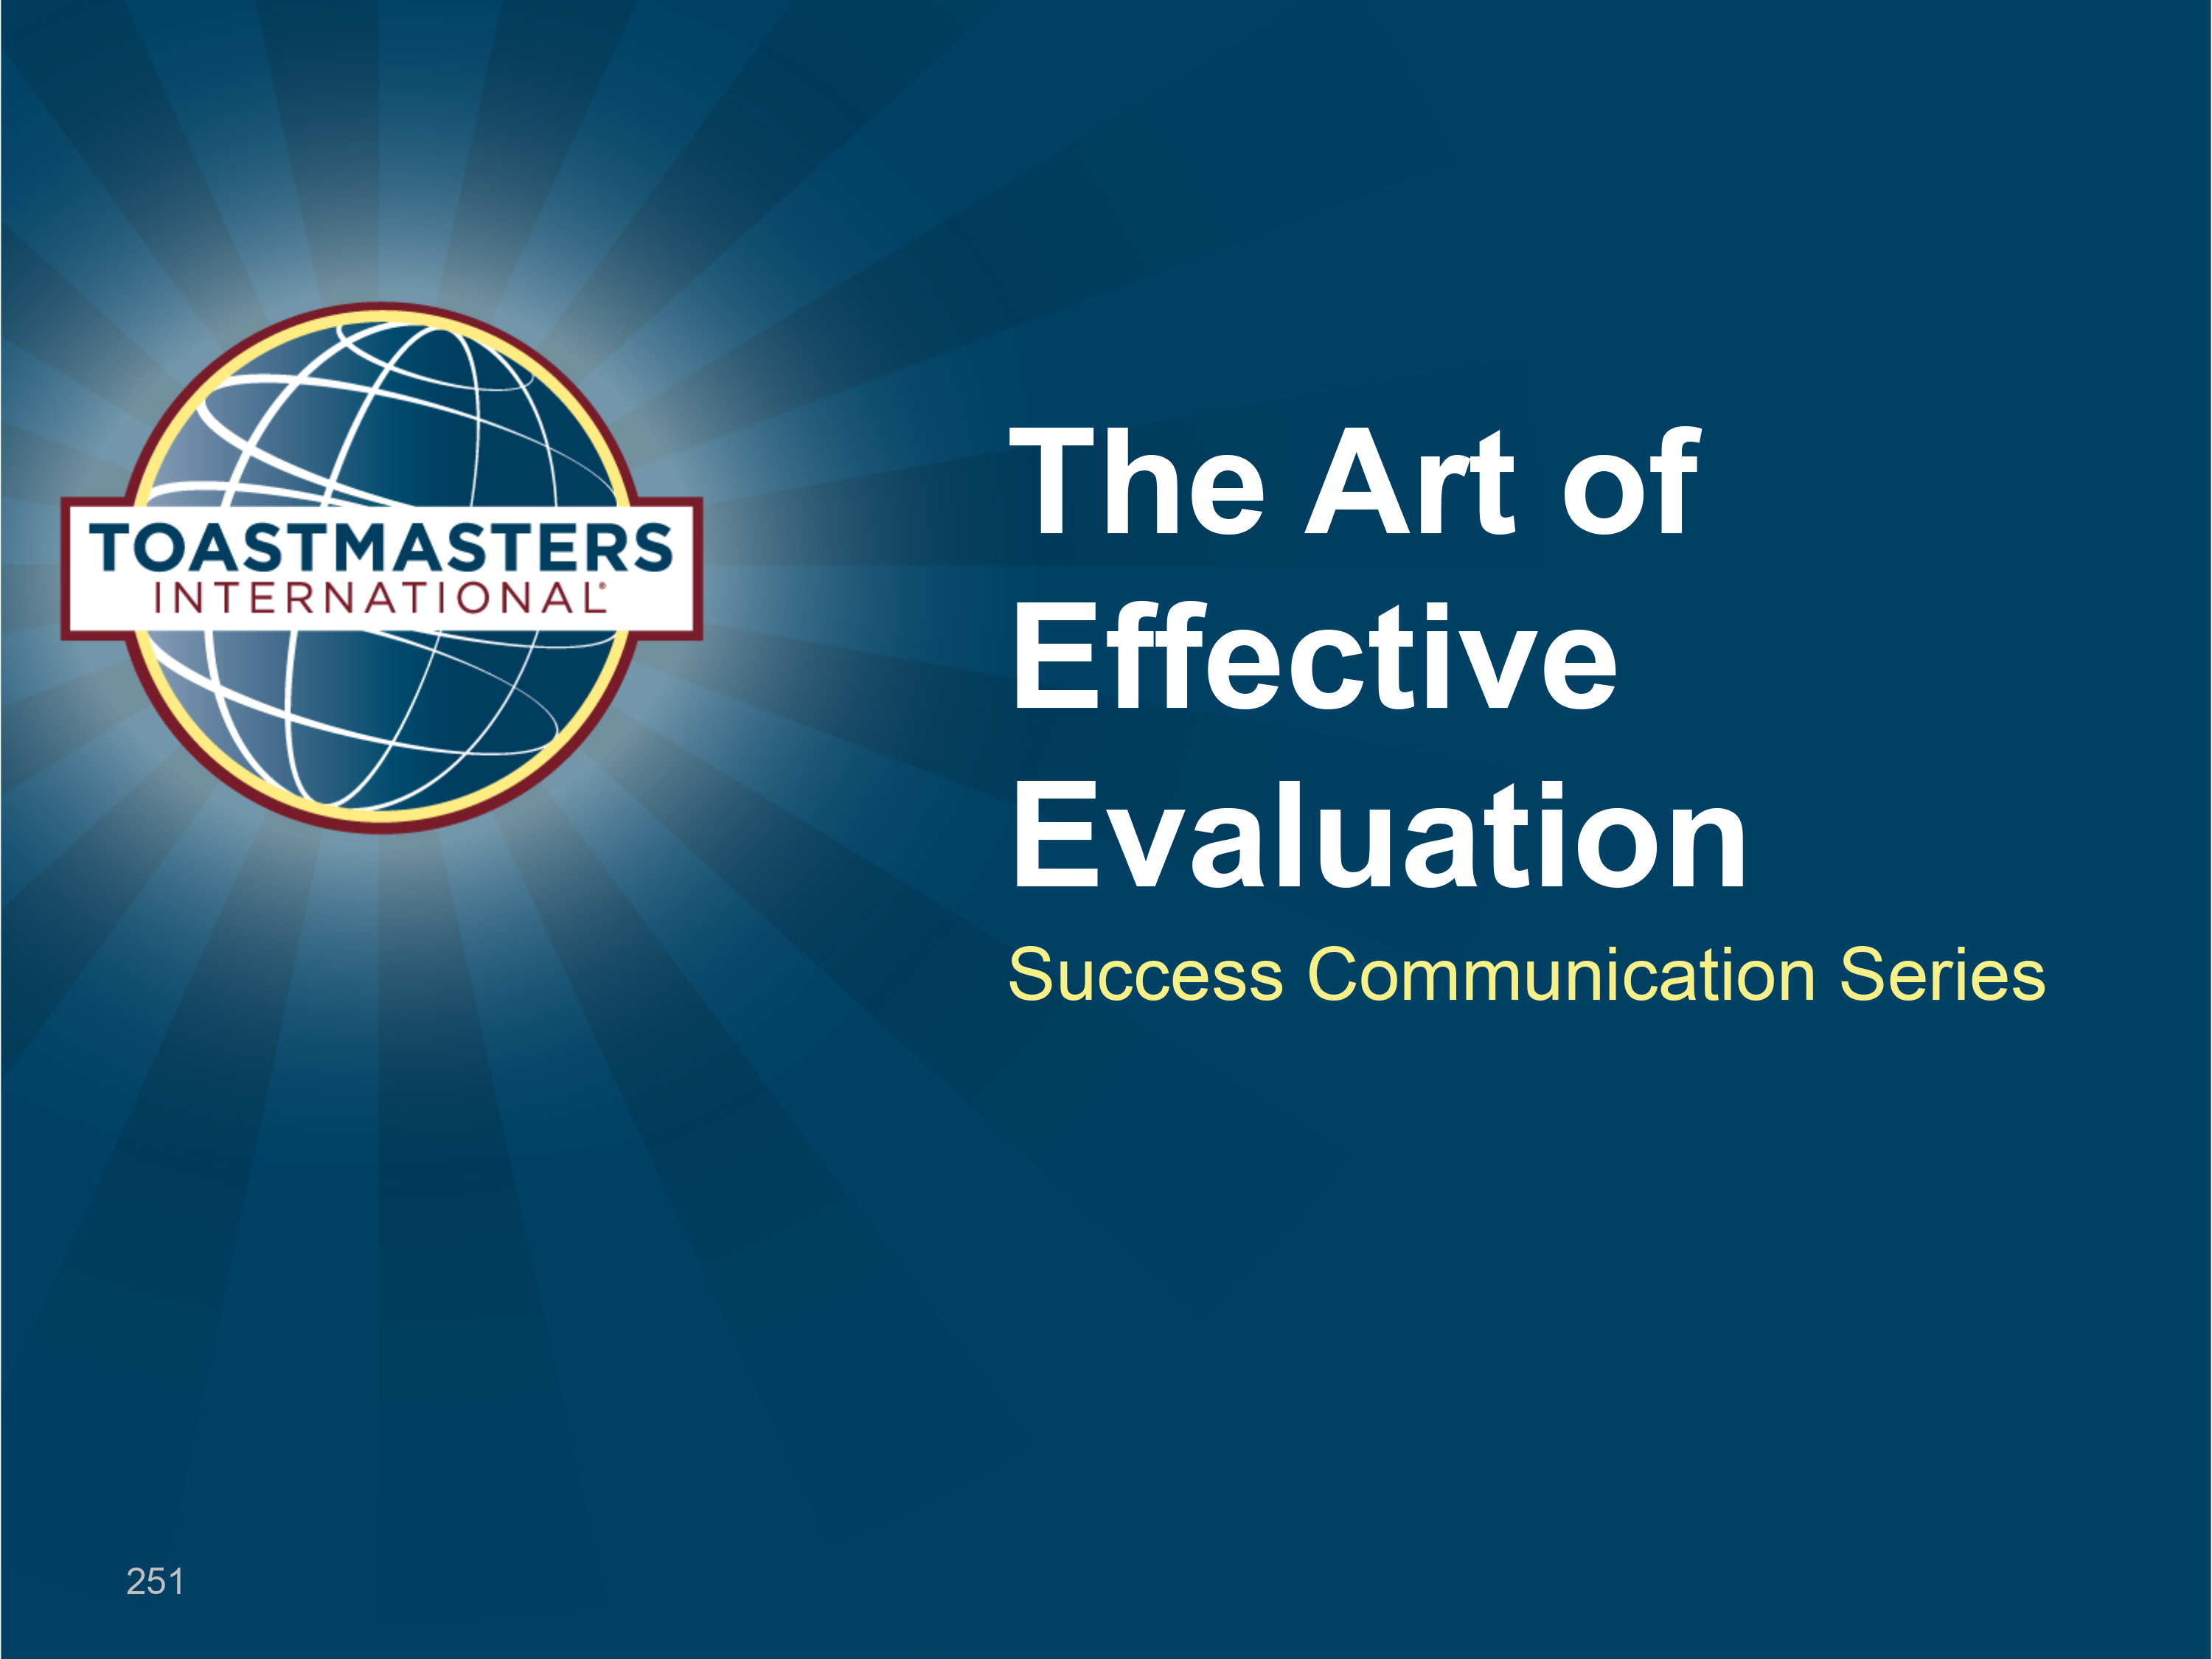 The Art of Effective Evaluation (PPT)